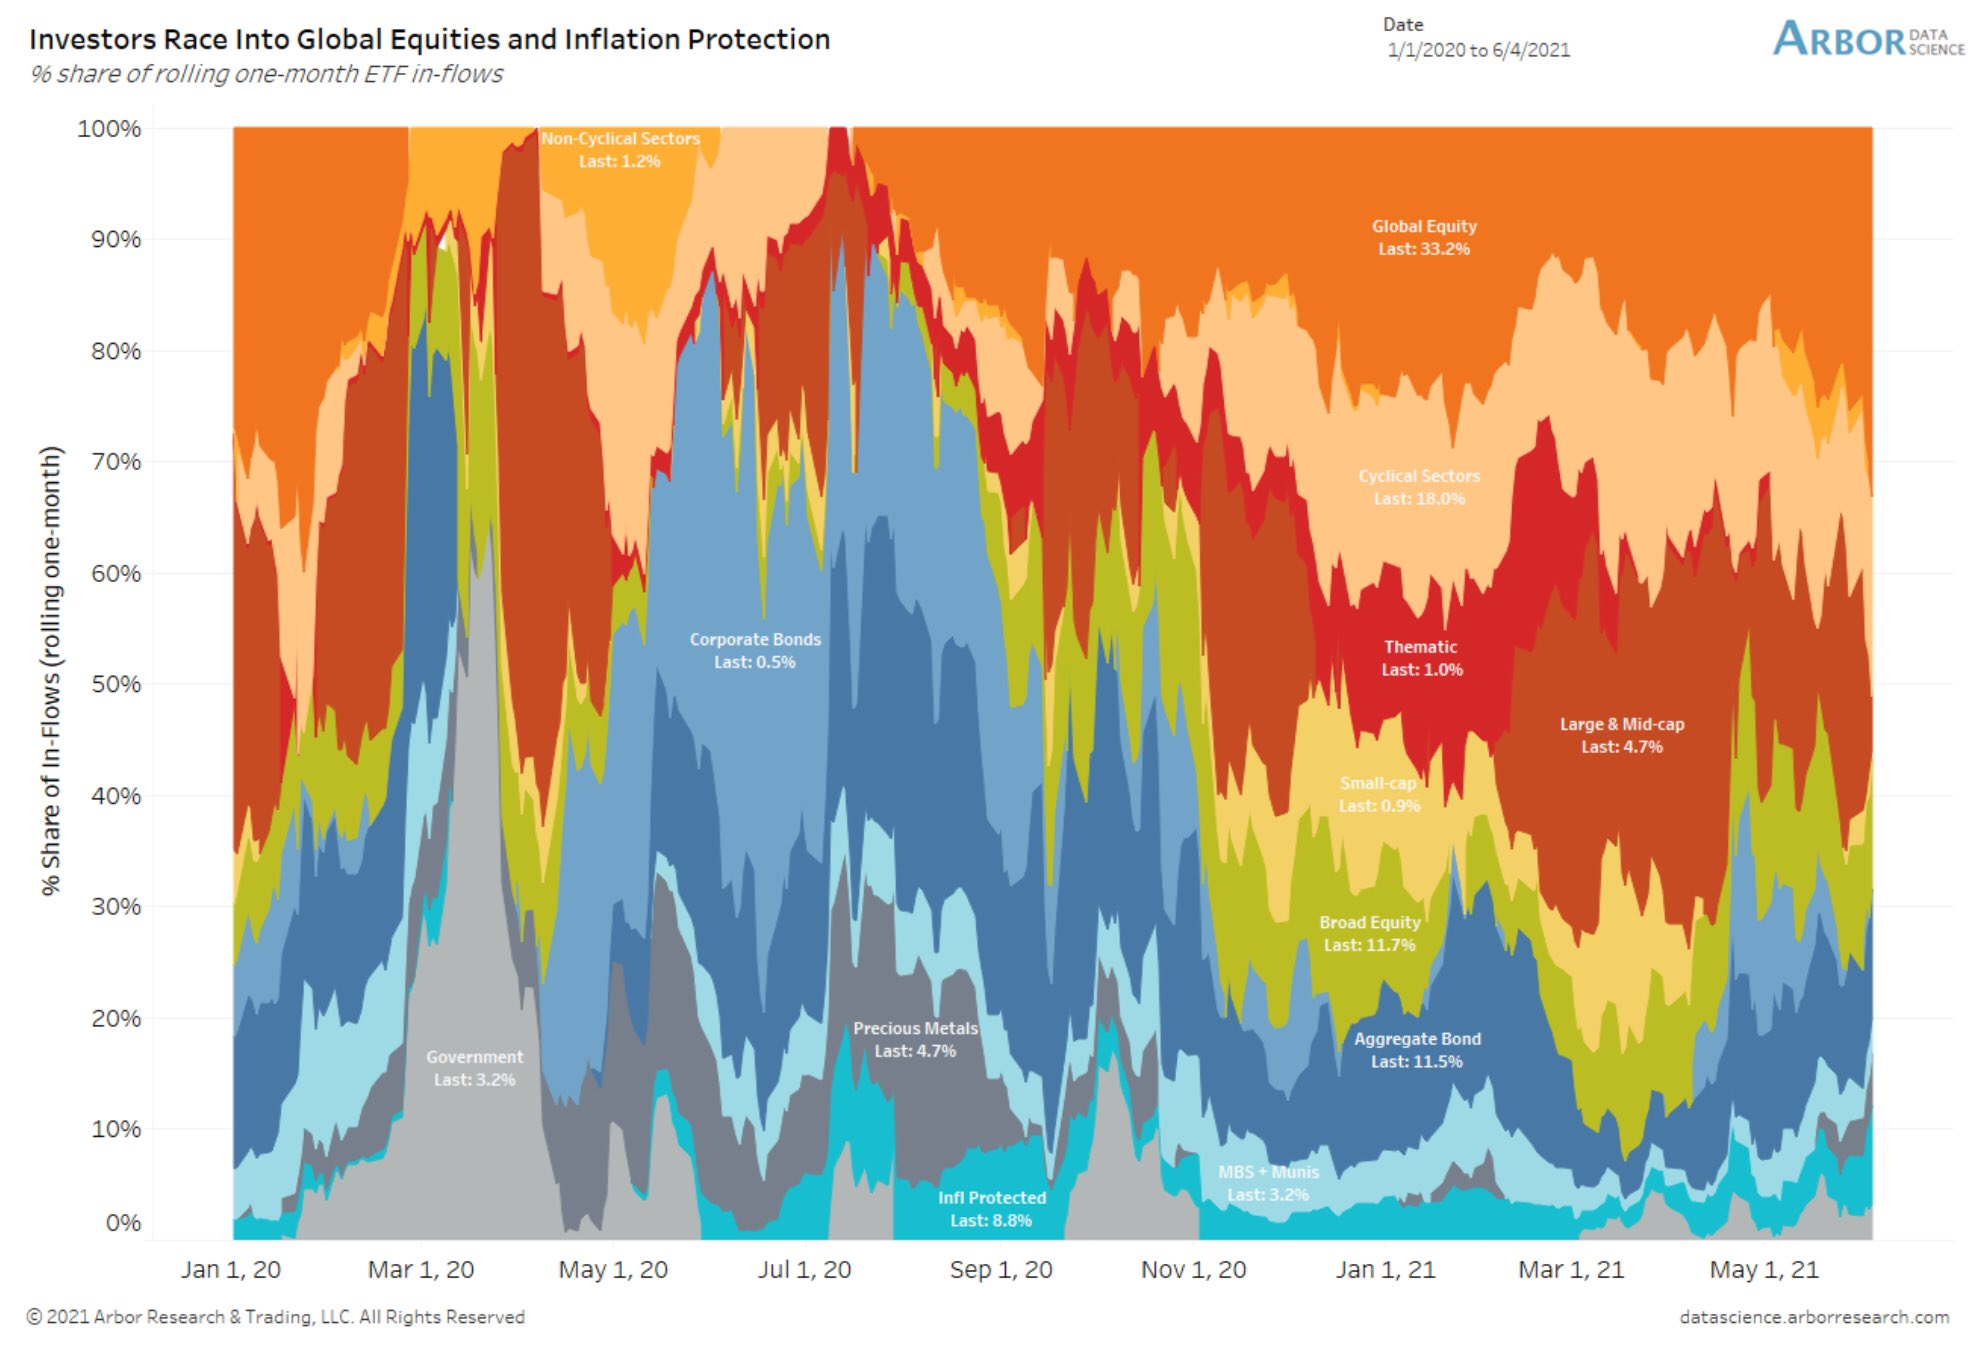 ETF inflows indicate love for equities and inflation protection